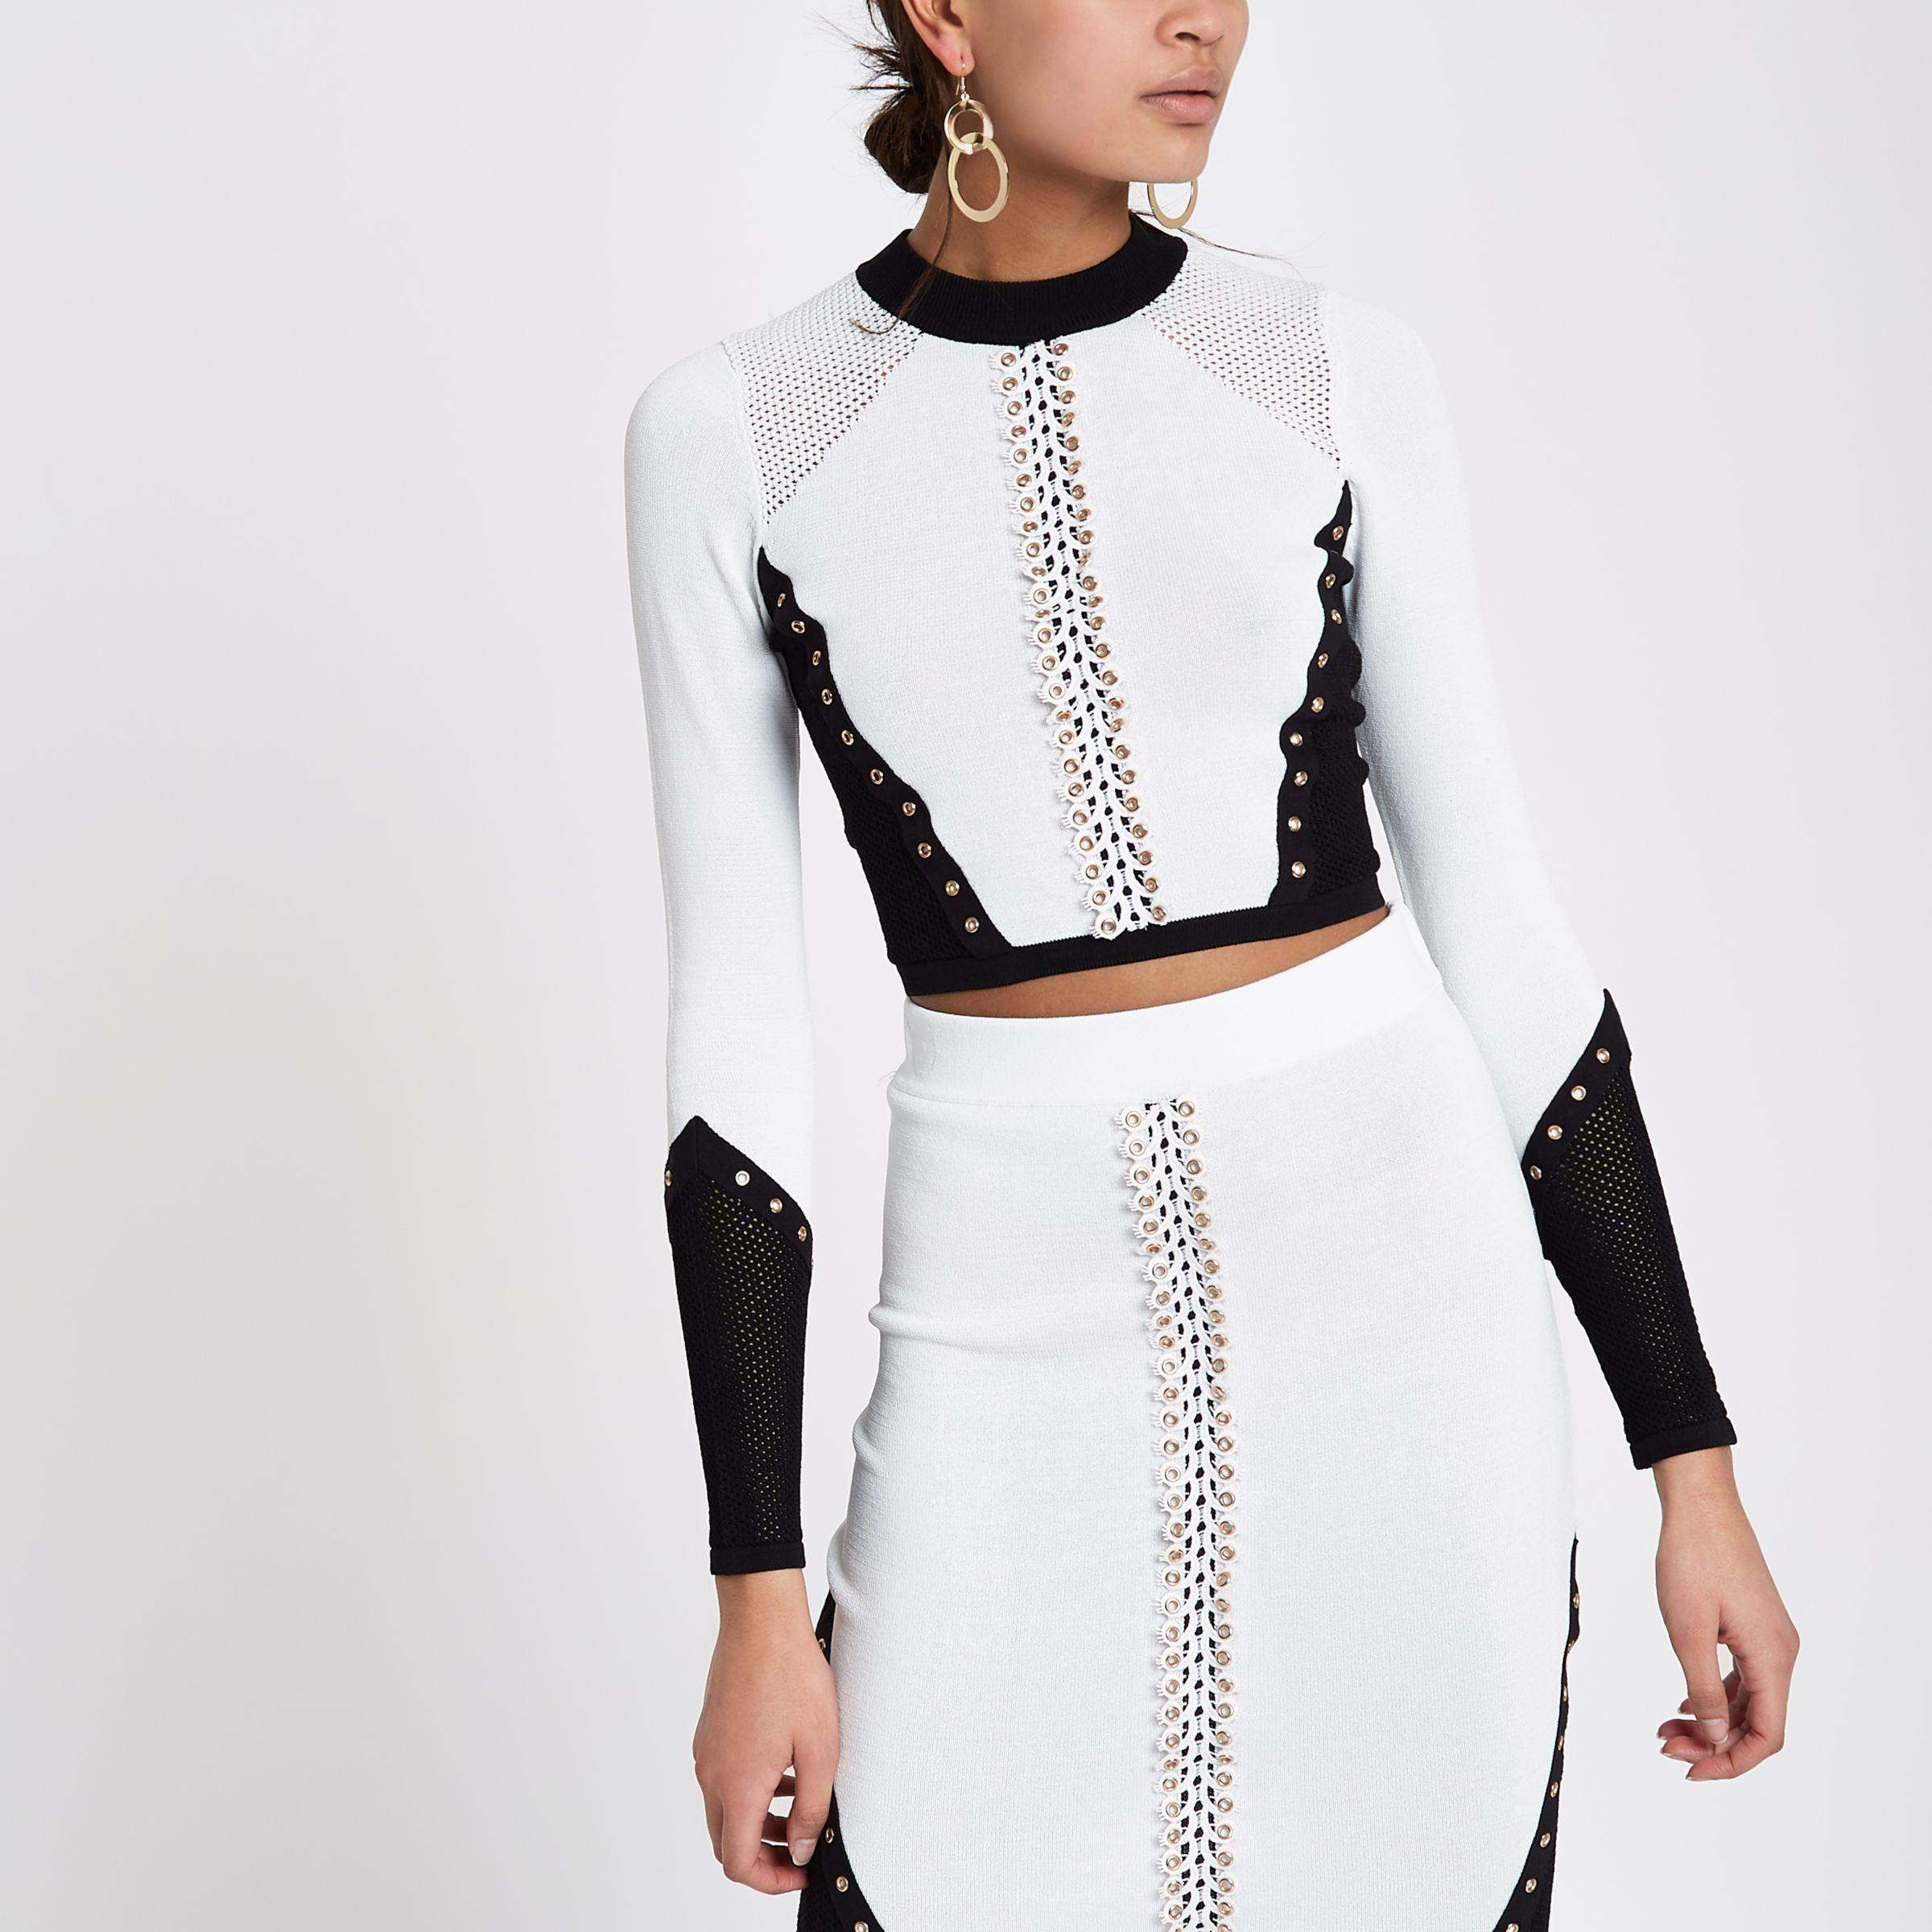 cc8881ff4d1 River Island White Blocked Eyelet Knitted Crop Top in White - Lyst